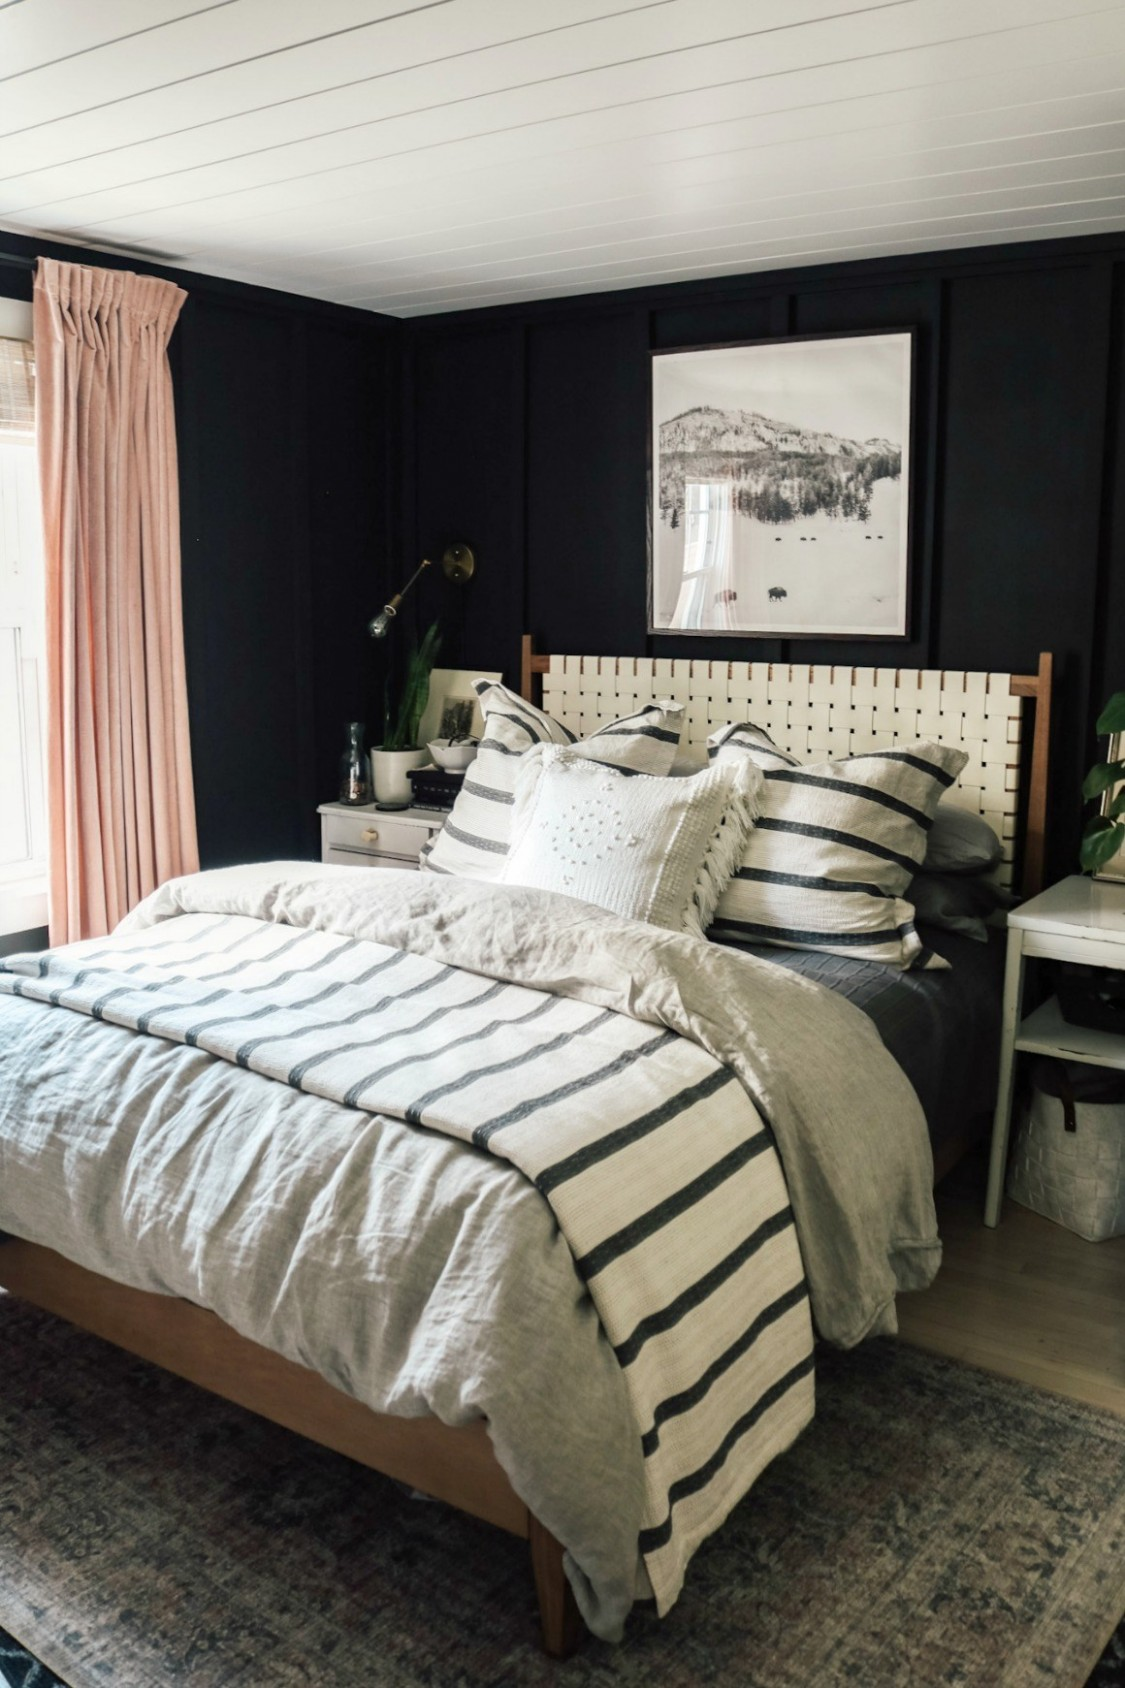 Budget Bedding Ideas - Nesting With Grace - Bedroom Quilt Ideas